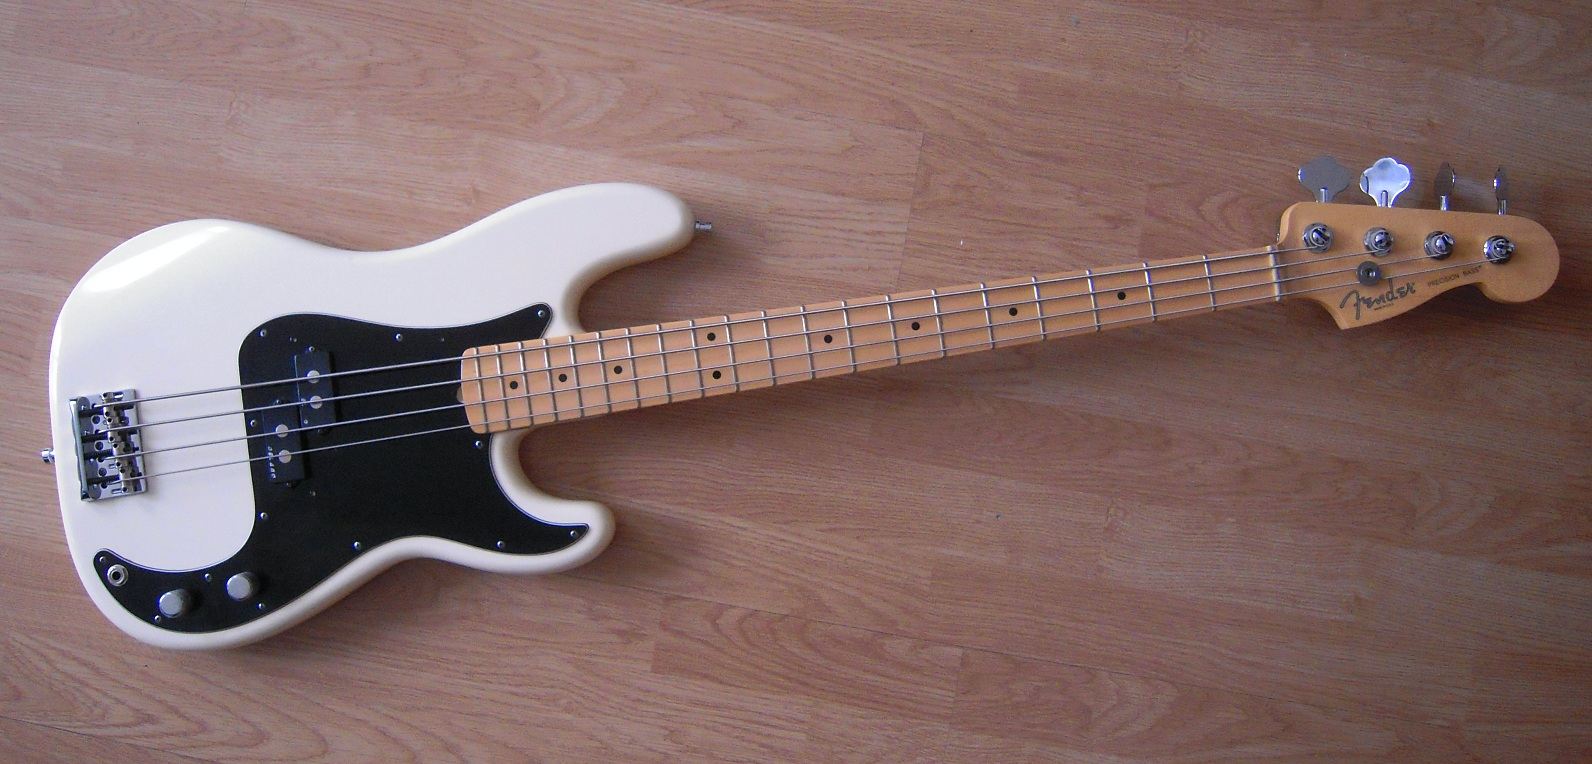 fender american standard precision bass 2012 current image 498359 audiofanzine. Black Bedroom Furniture Sets. Home Design Ideas